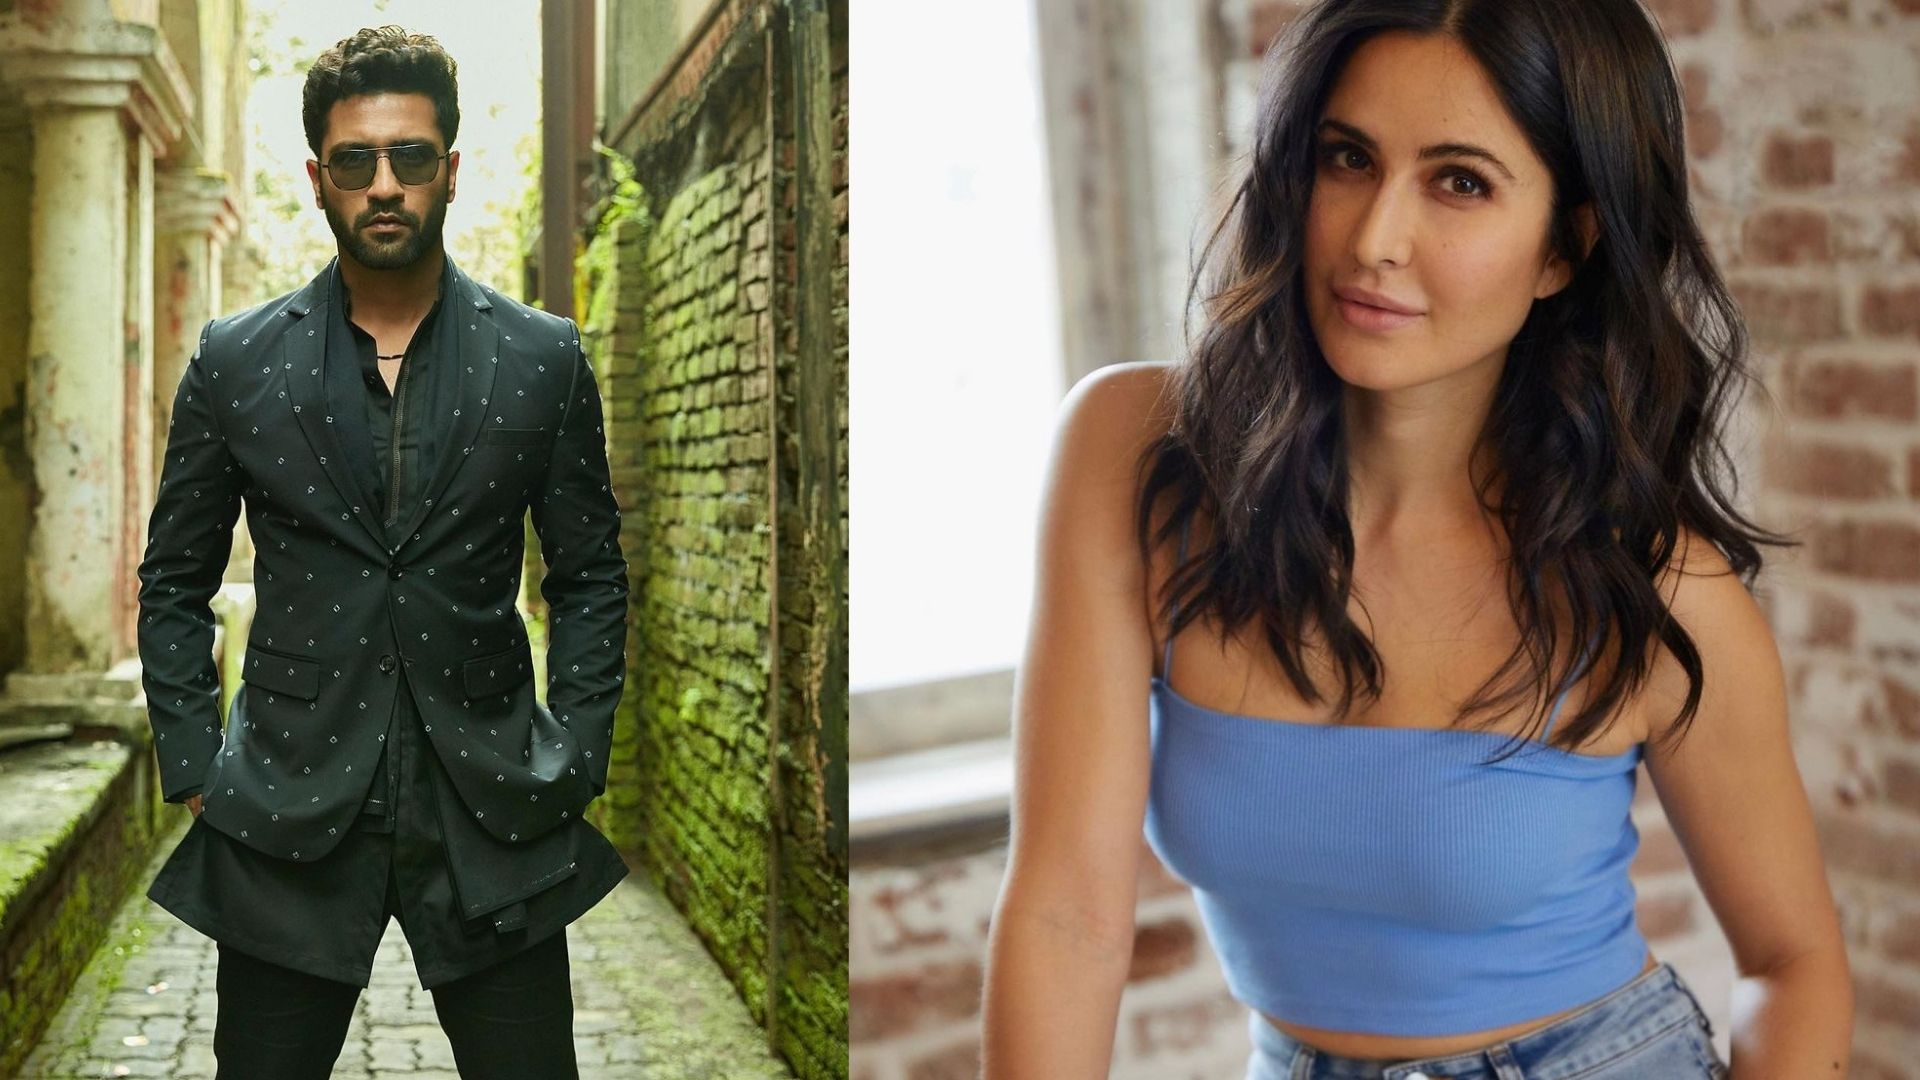 Katrina Kaif Lauds Her Rumoured Beau Vicky Kaushal For His Outstanding Raw And Honest Performance In His Recent Film